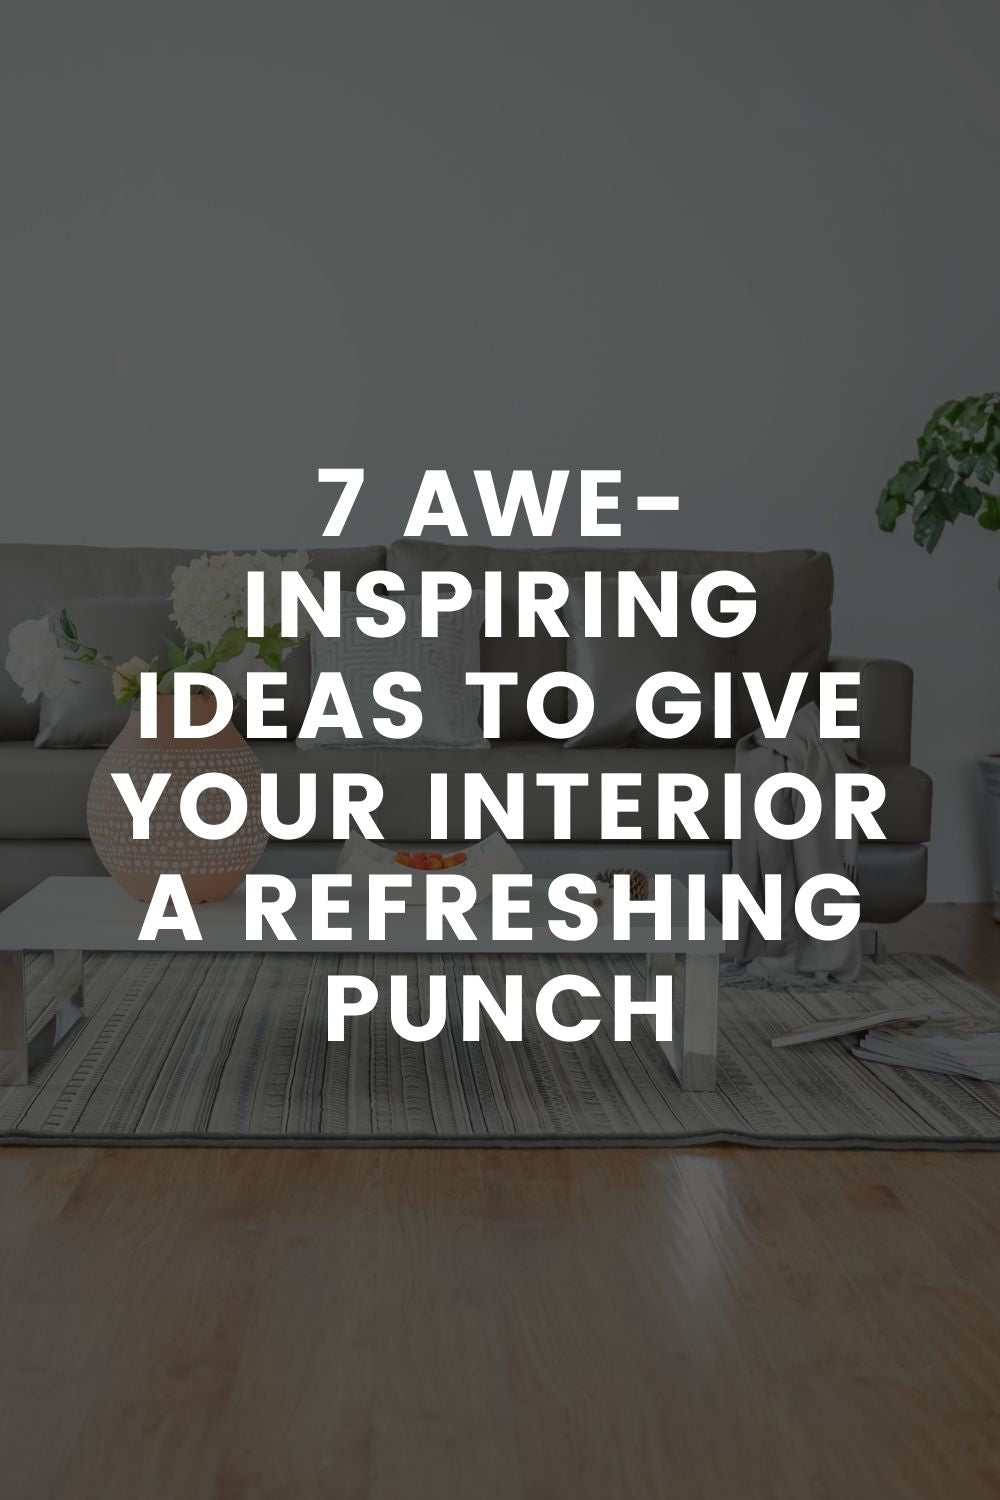 7 Awe-Inspiring Ideas to Give Your Interior a Refreshing Punch